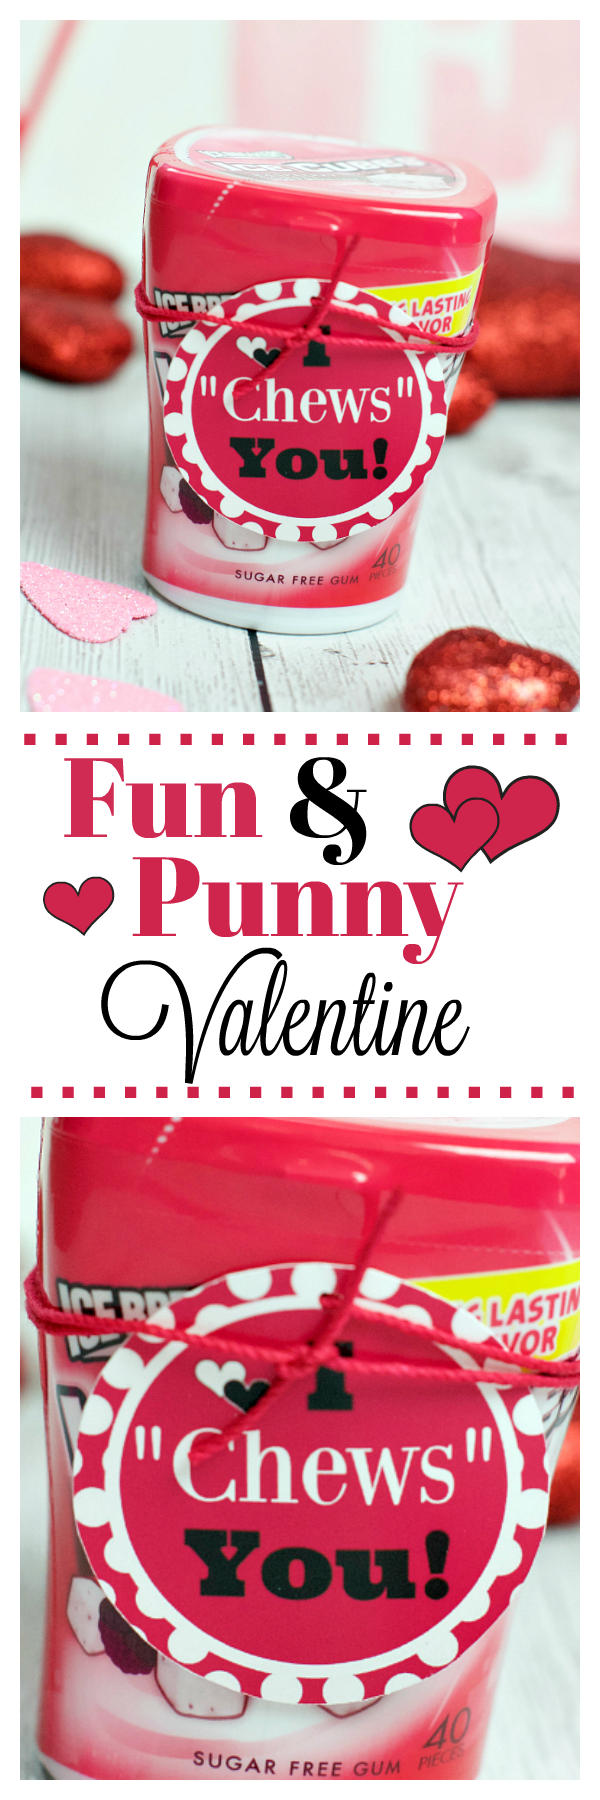 Fun and Punny Valentine. Such a fun way to say Happy Valentine's Day!